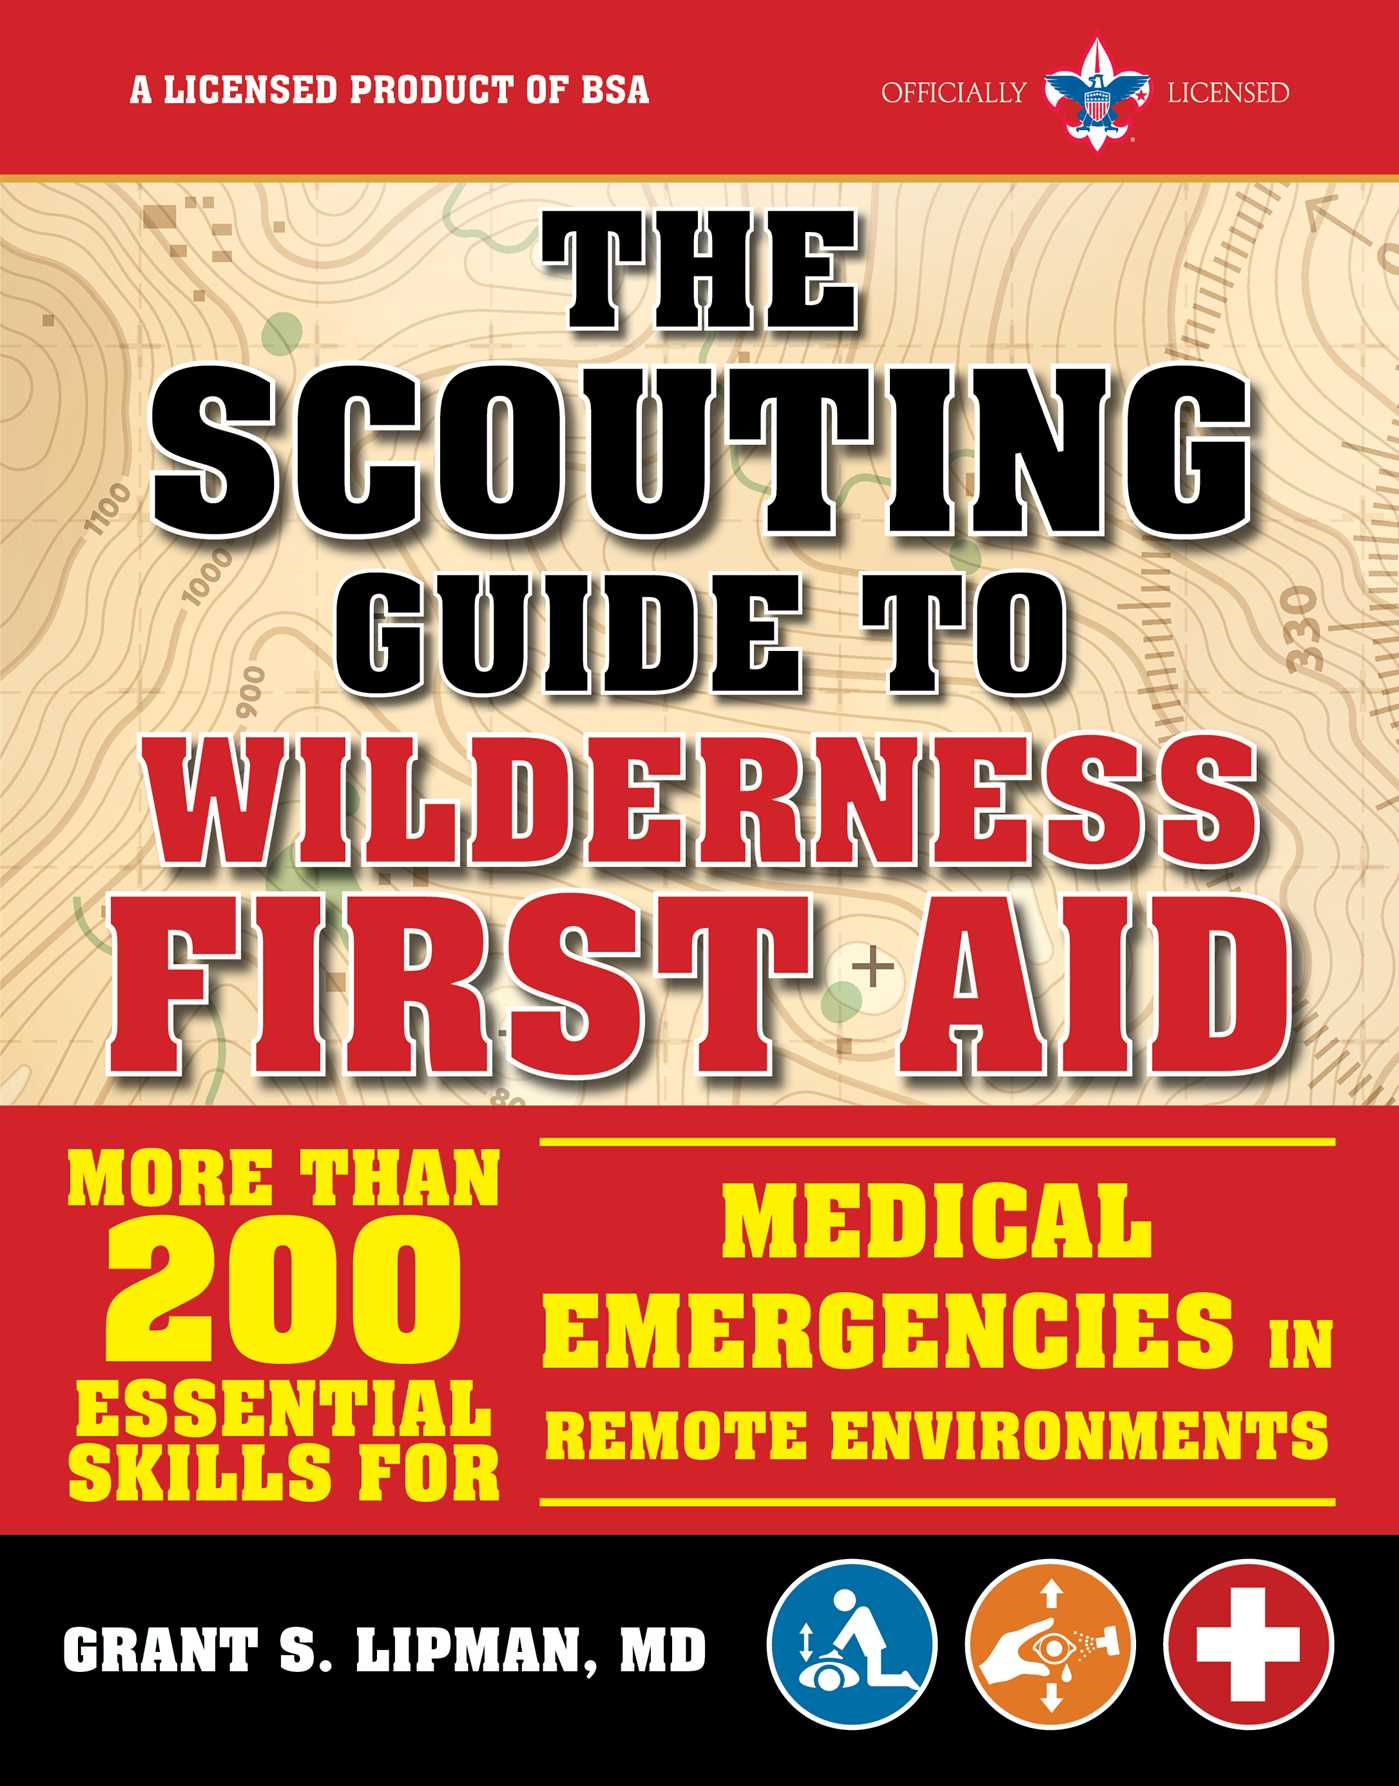 The Scouting Guide to Wilderness First Aid: An Officially-Licensed Book of the Boy Scouts of America